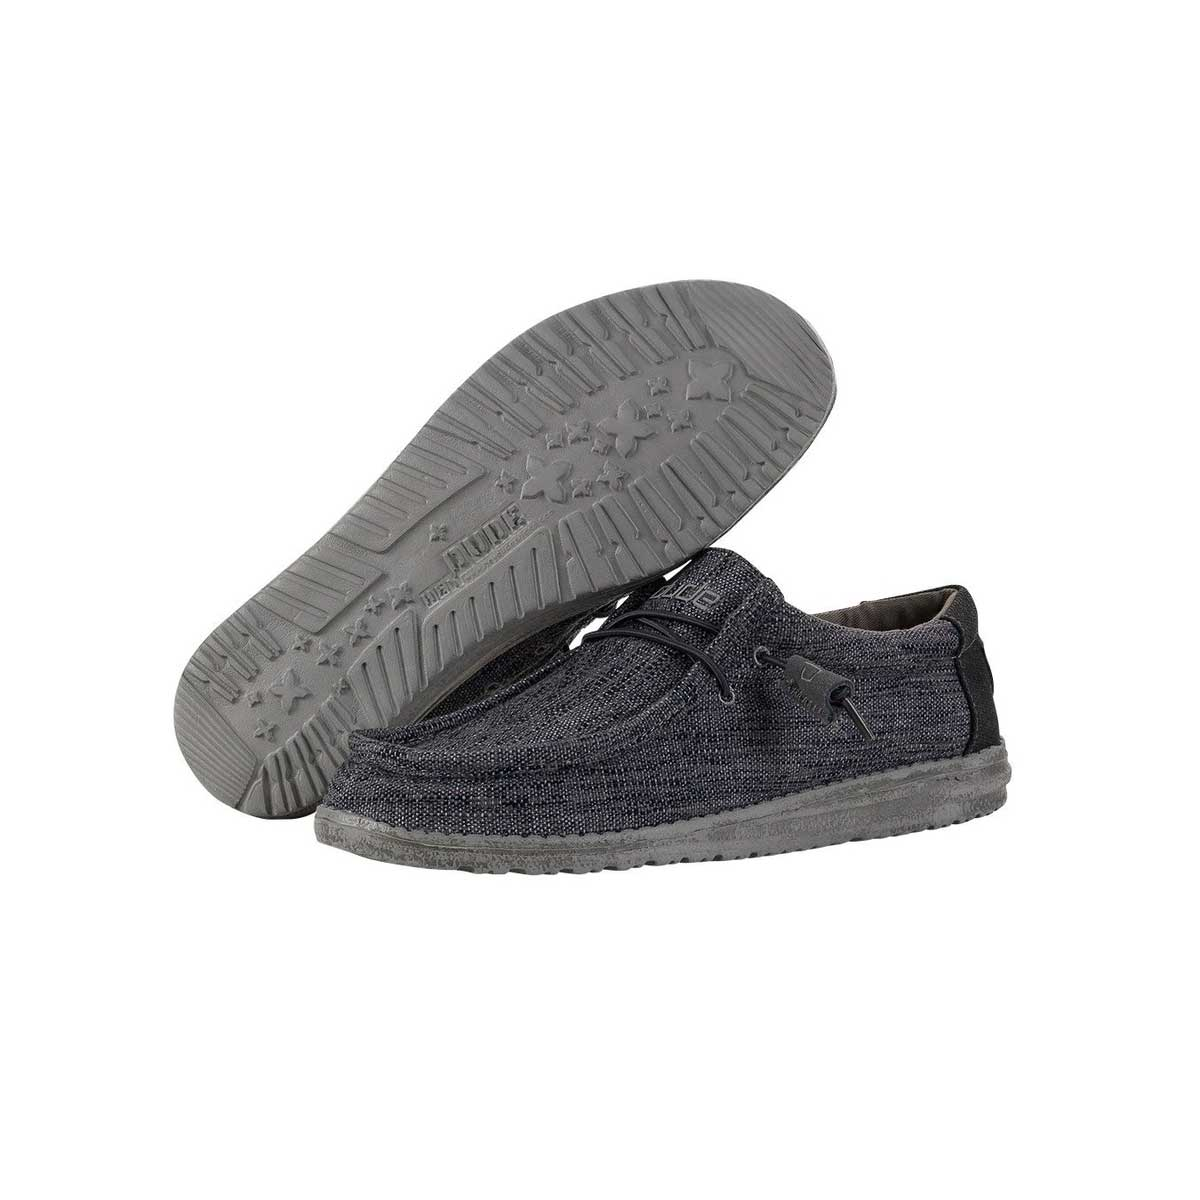 Hey Dude Wally Woven Men's Shoes - Carbon